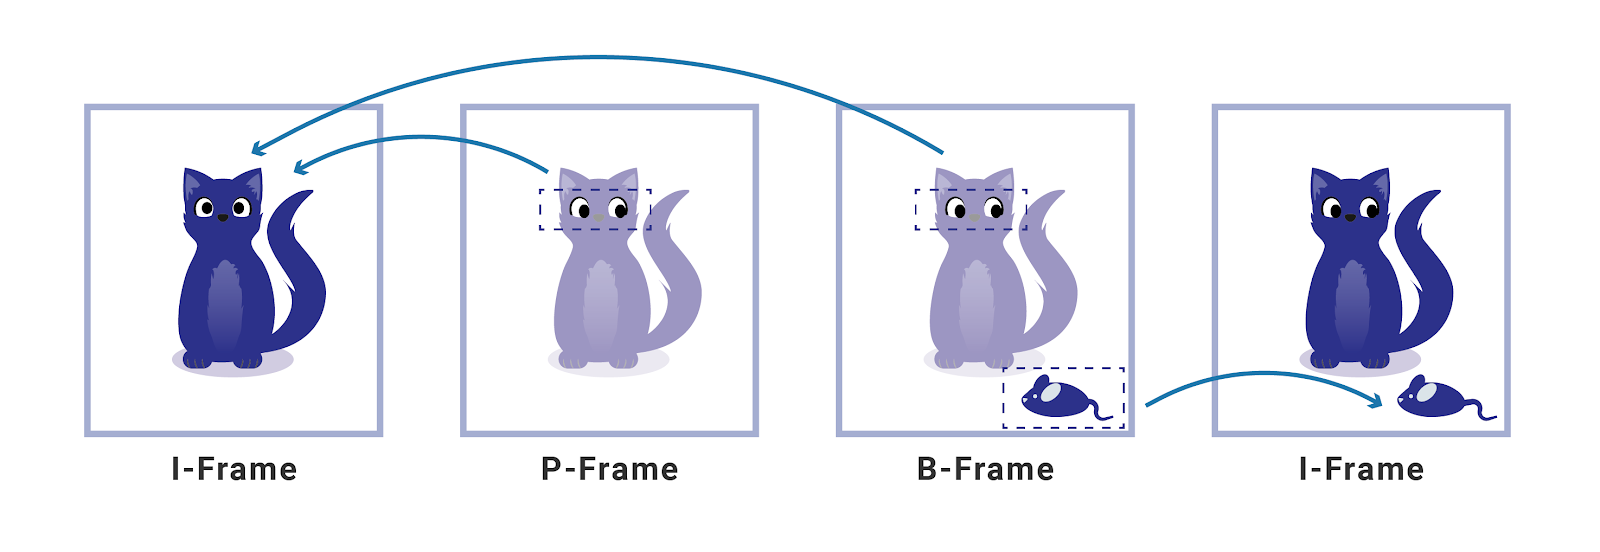 Making Video Intuitive: An Explainer